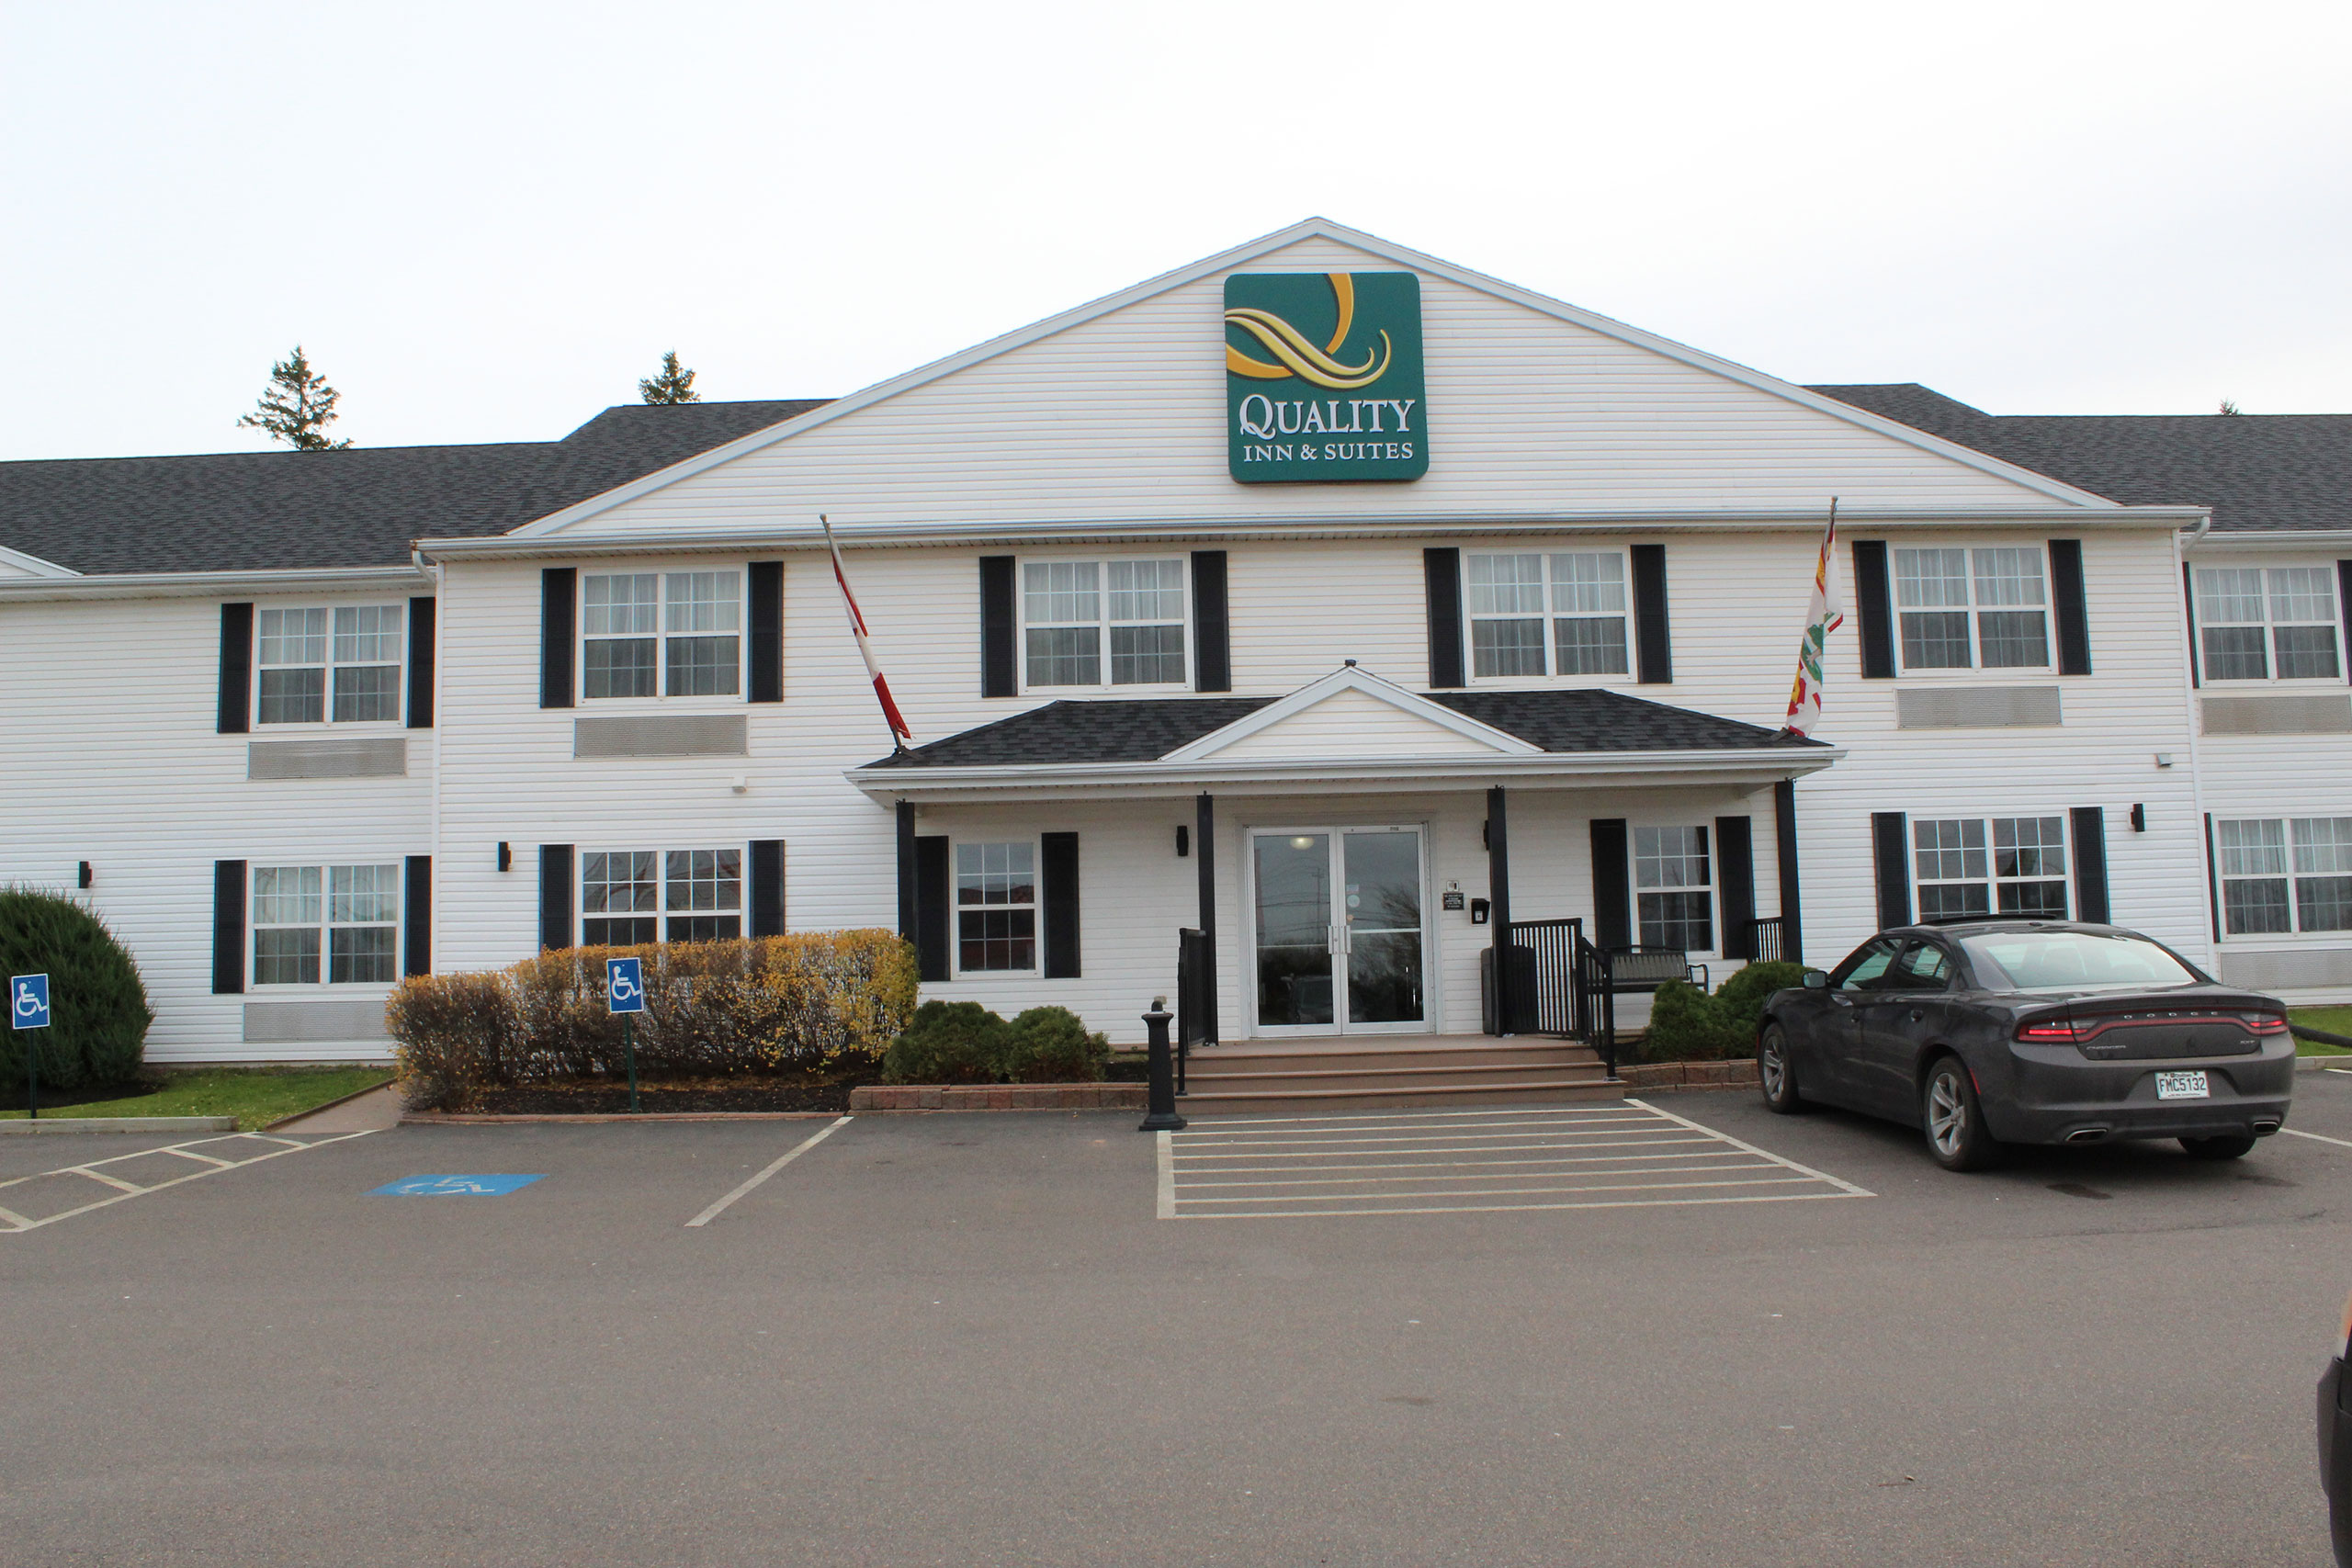 Quality Inn & Suites - Cornwall PEI outside